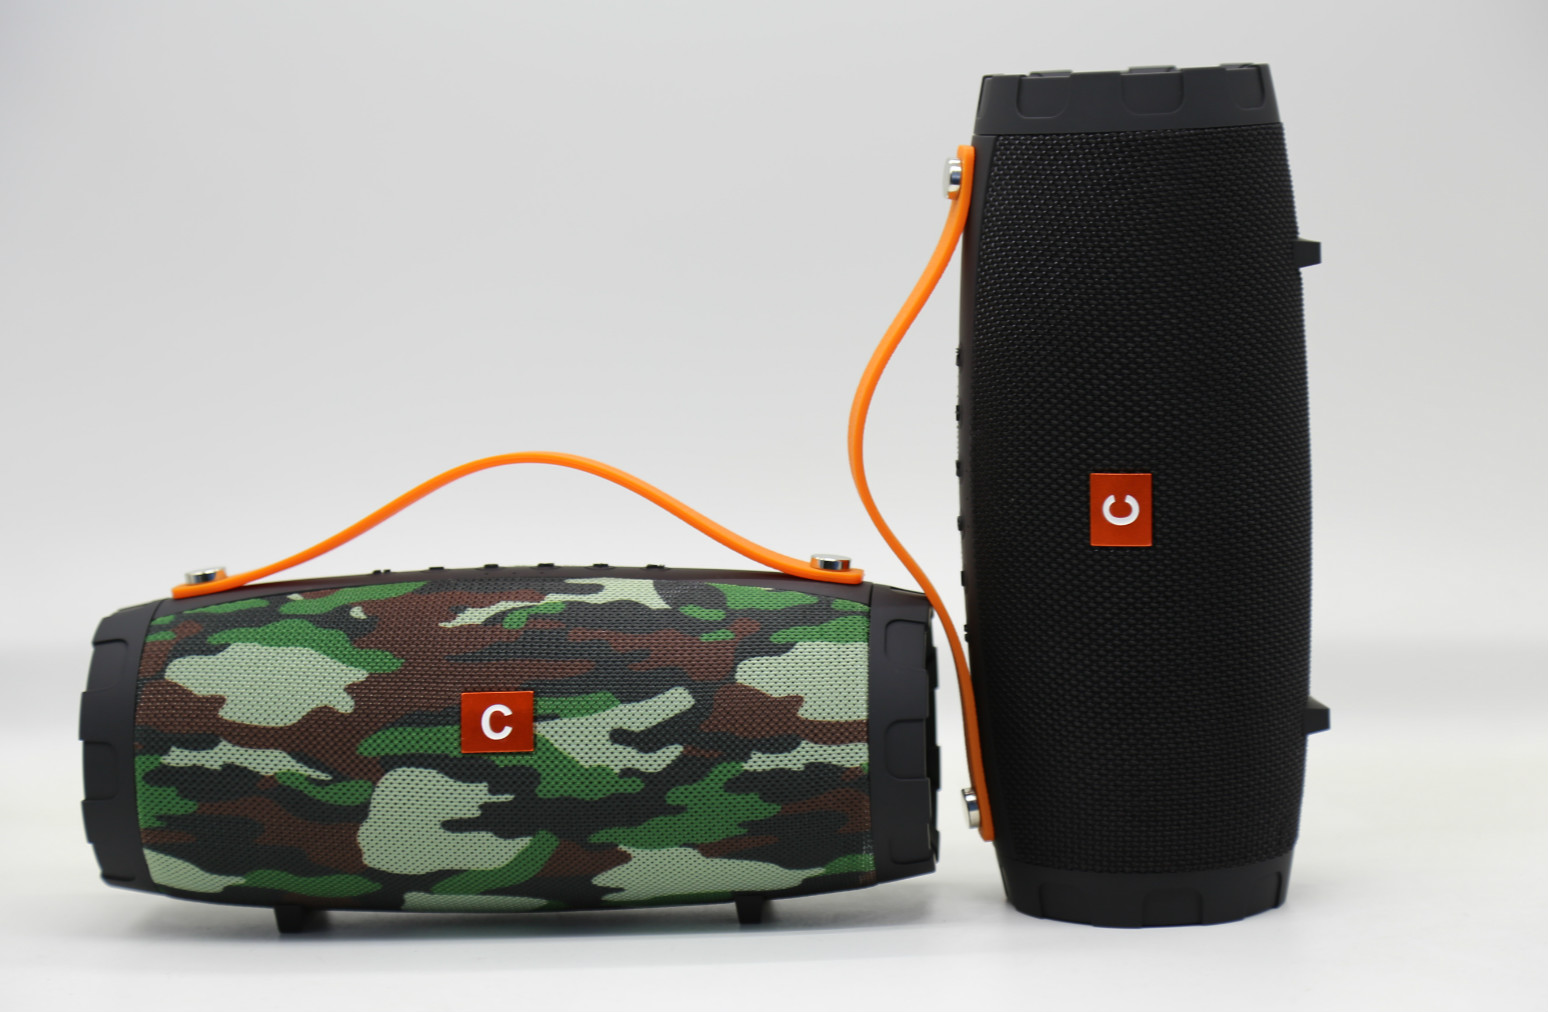 Outdoor BT Speaker CY-34 with Super Bass